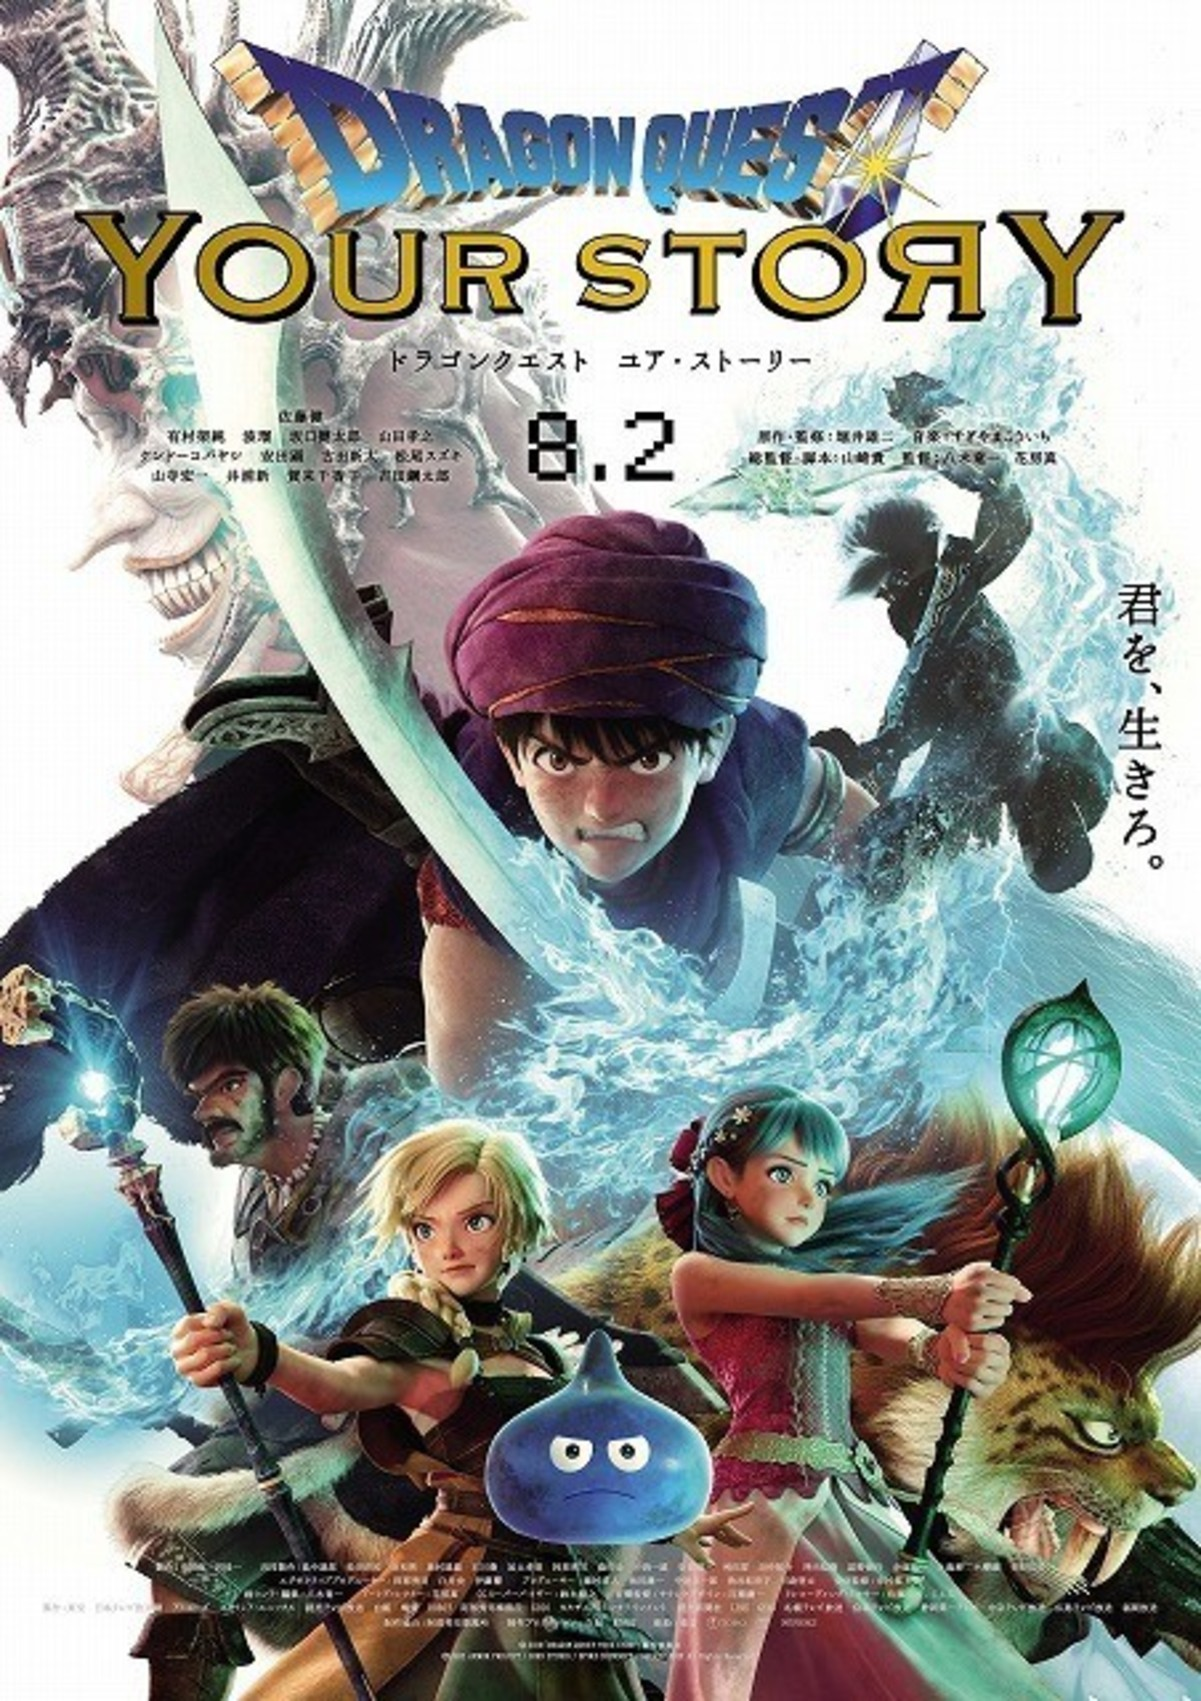 dragonquestyourstory